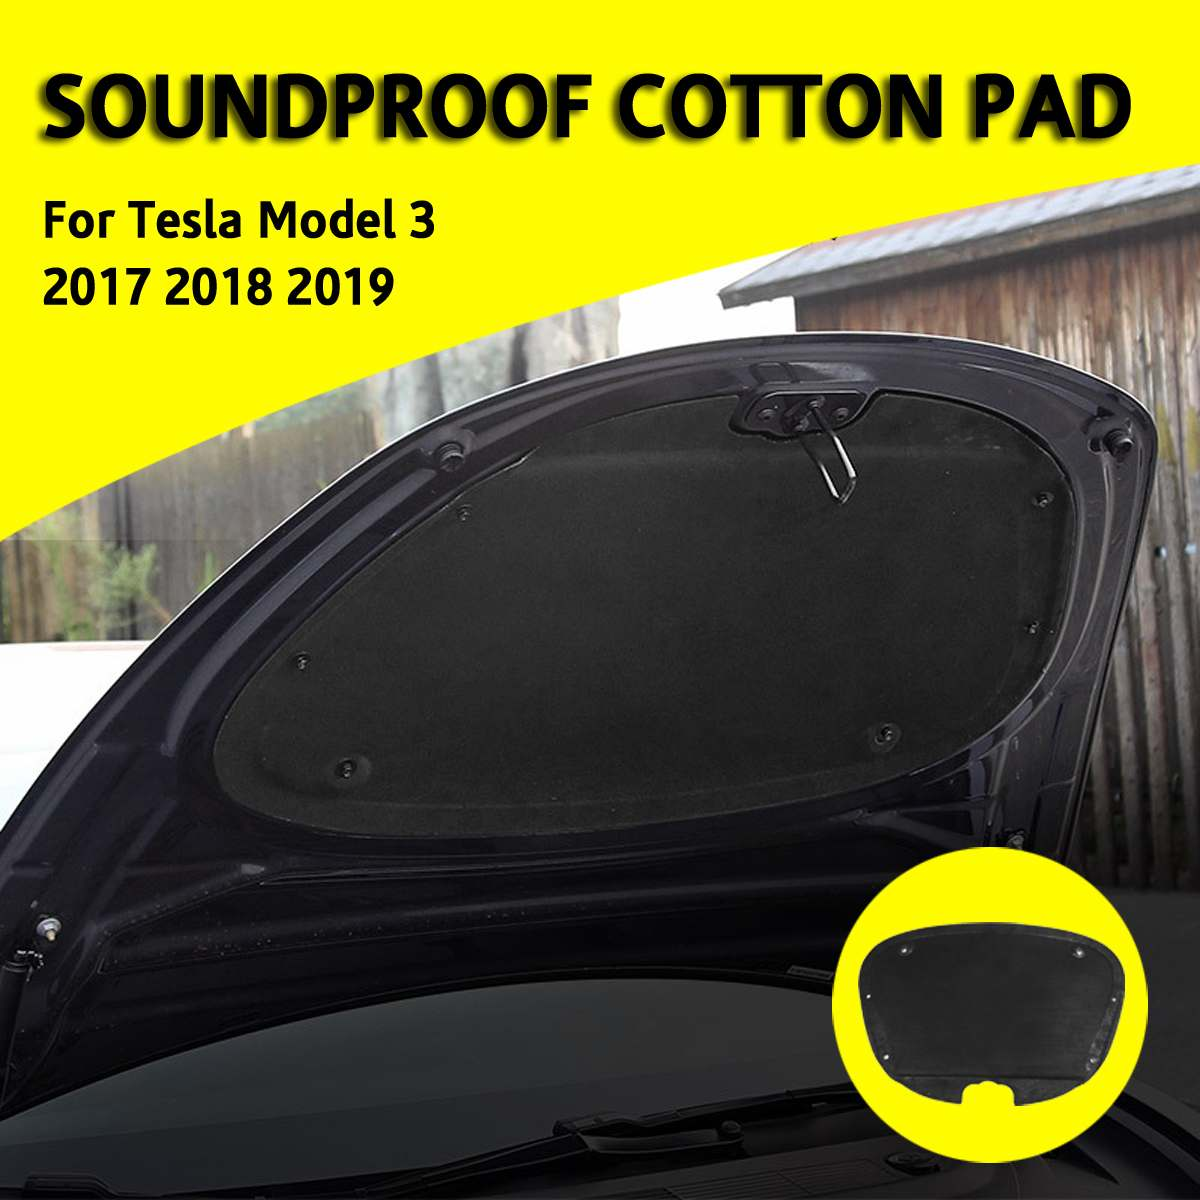 Front Engine Hood Noise Reduction Mat Soundproof Cotton Pad For Tesla Model 3